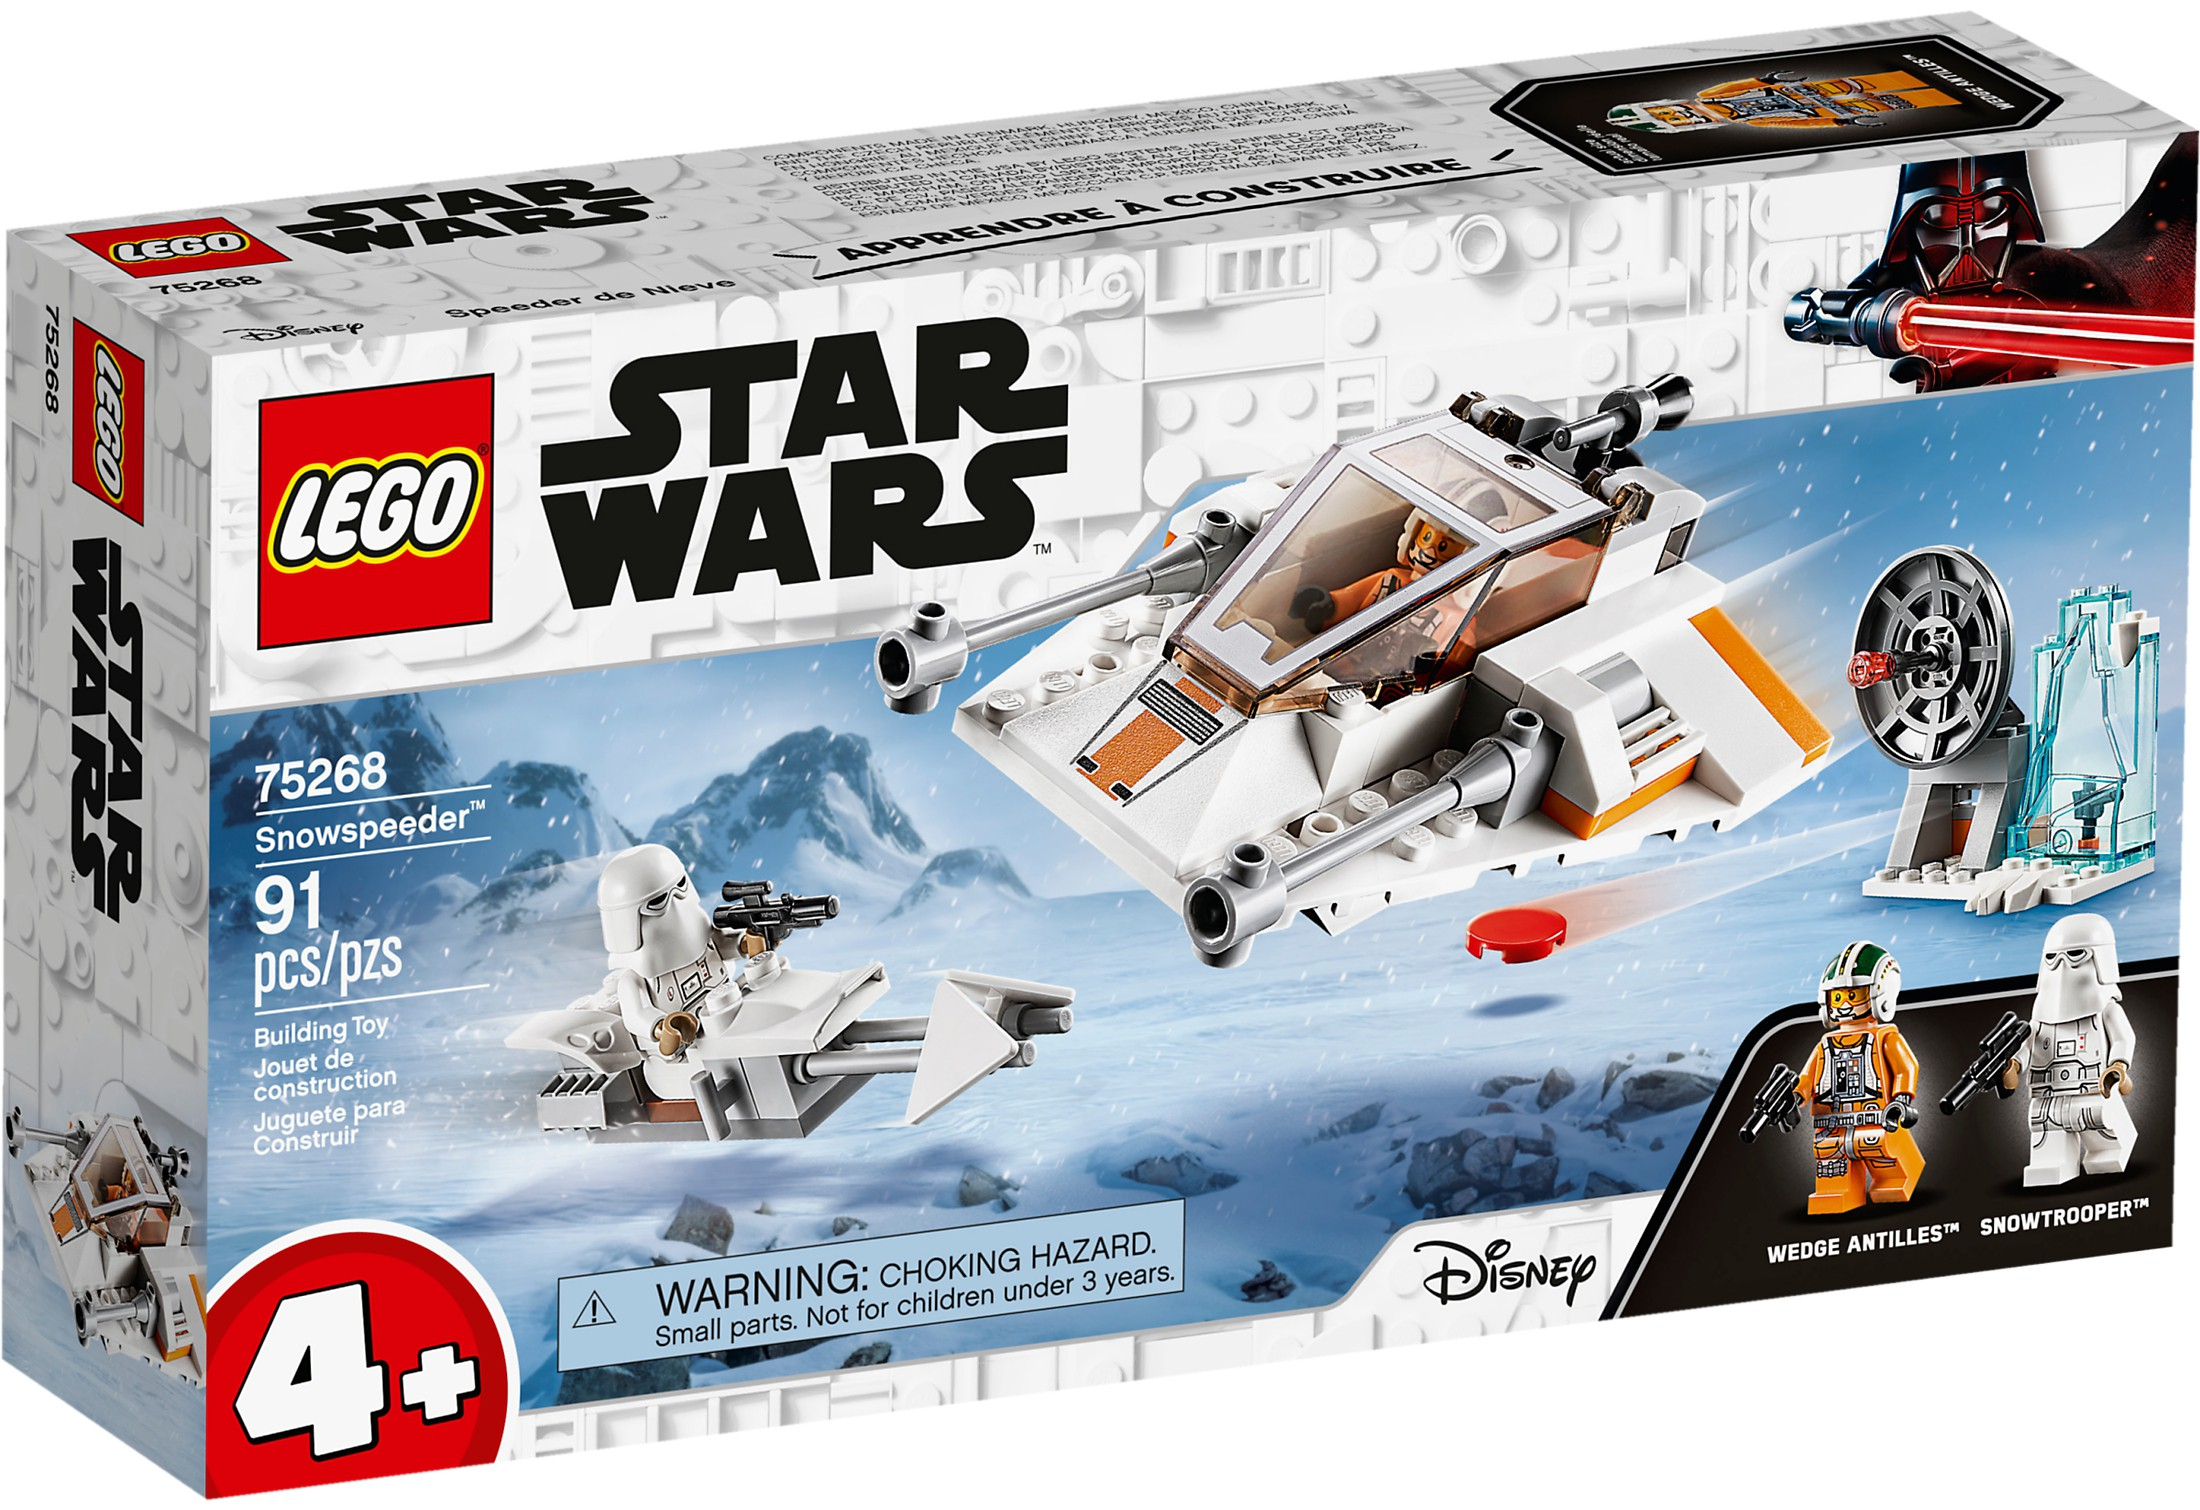 Star Wars ™ 75268 Snowspeeder